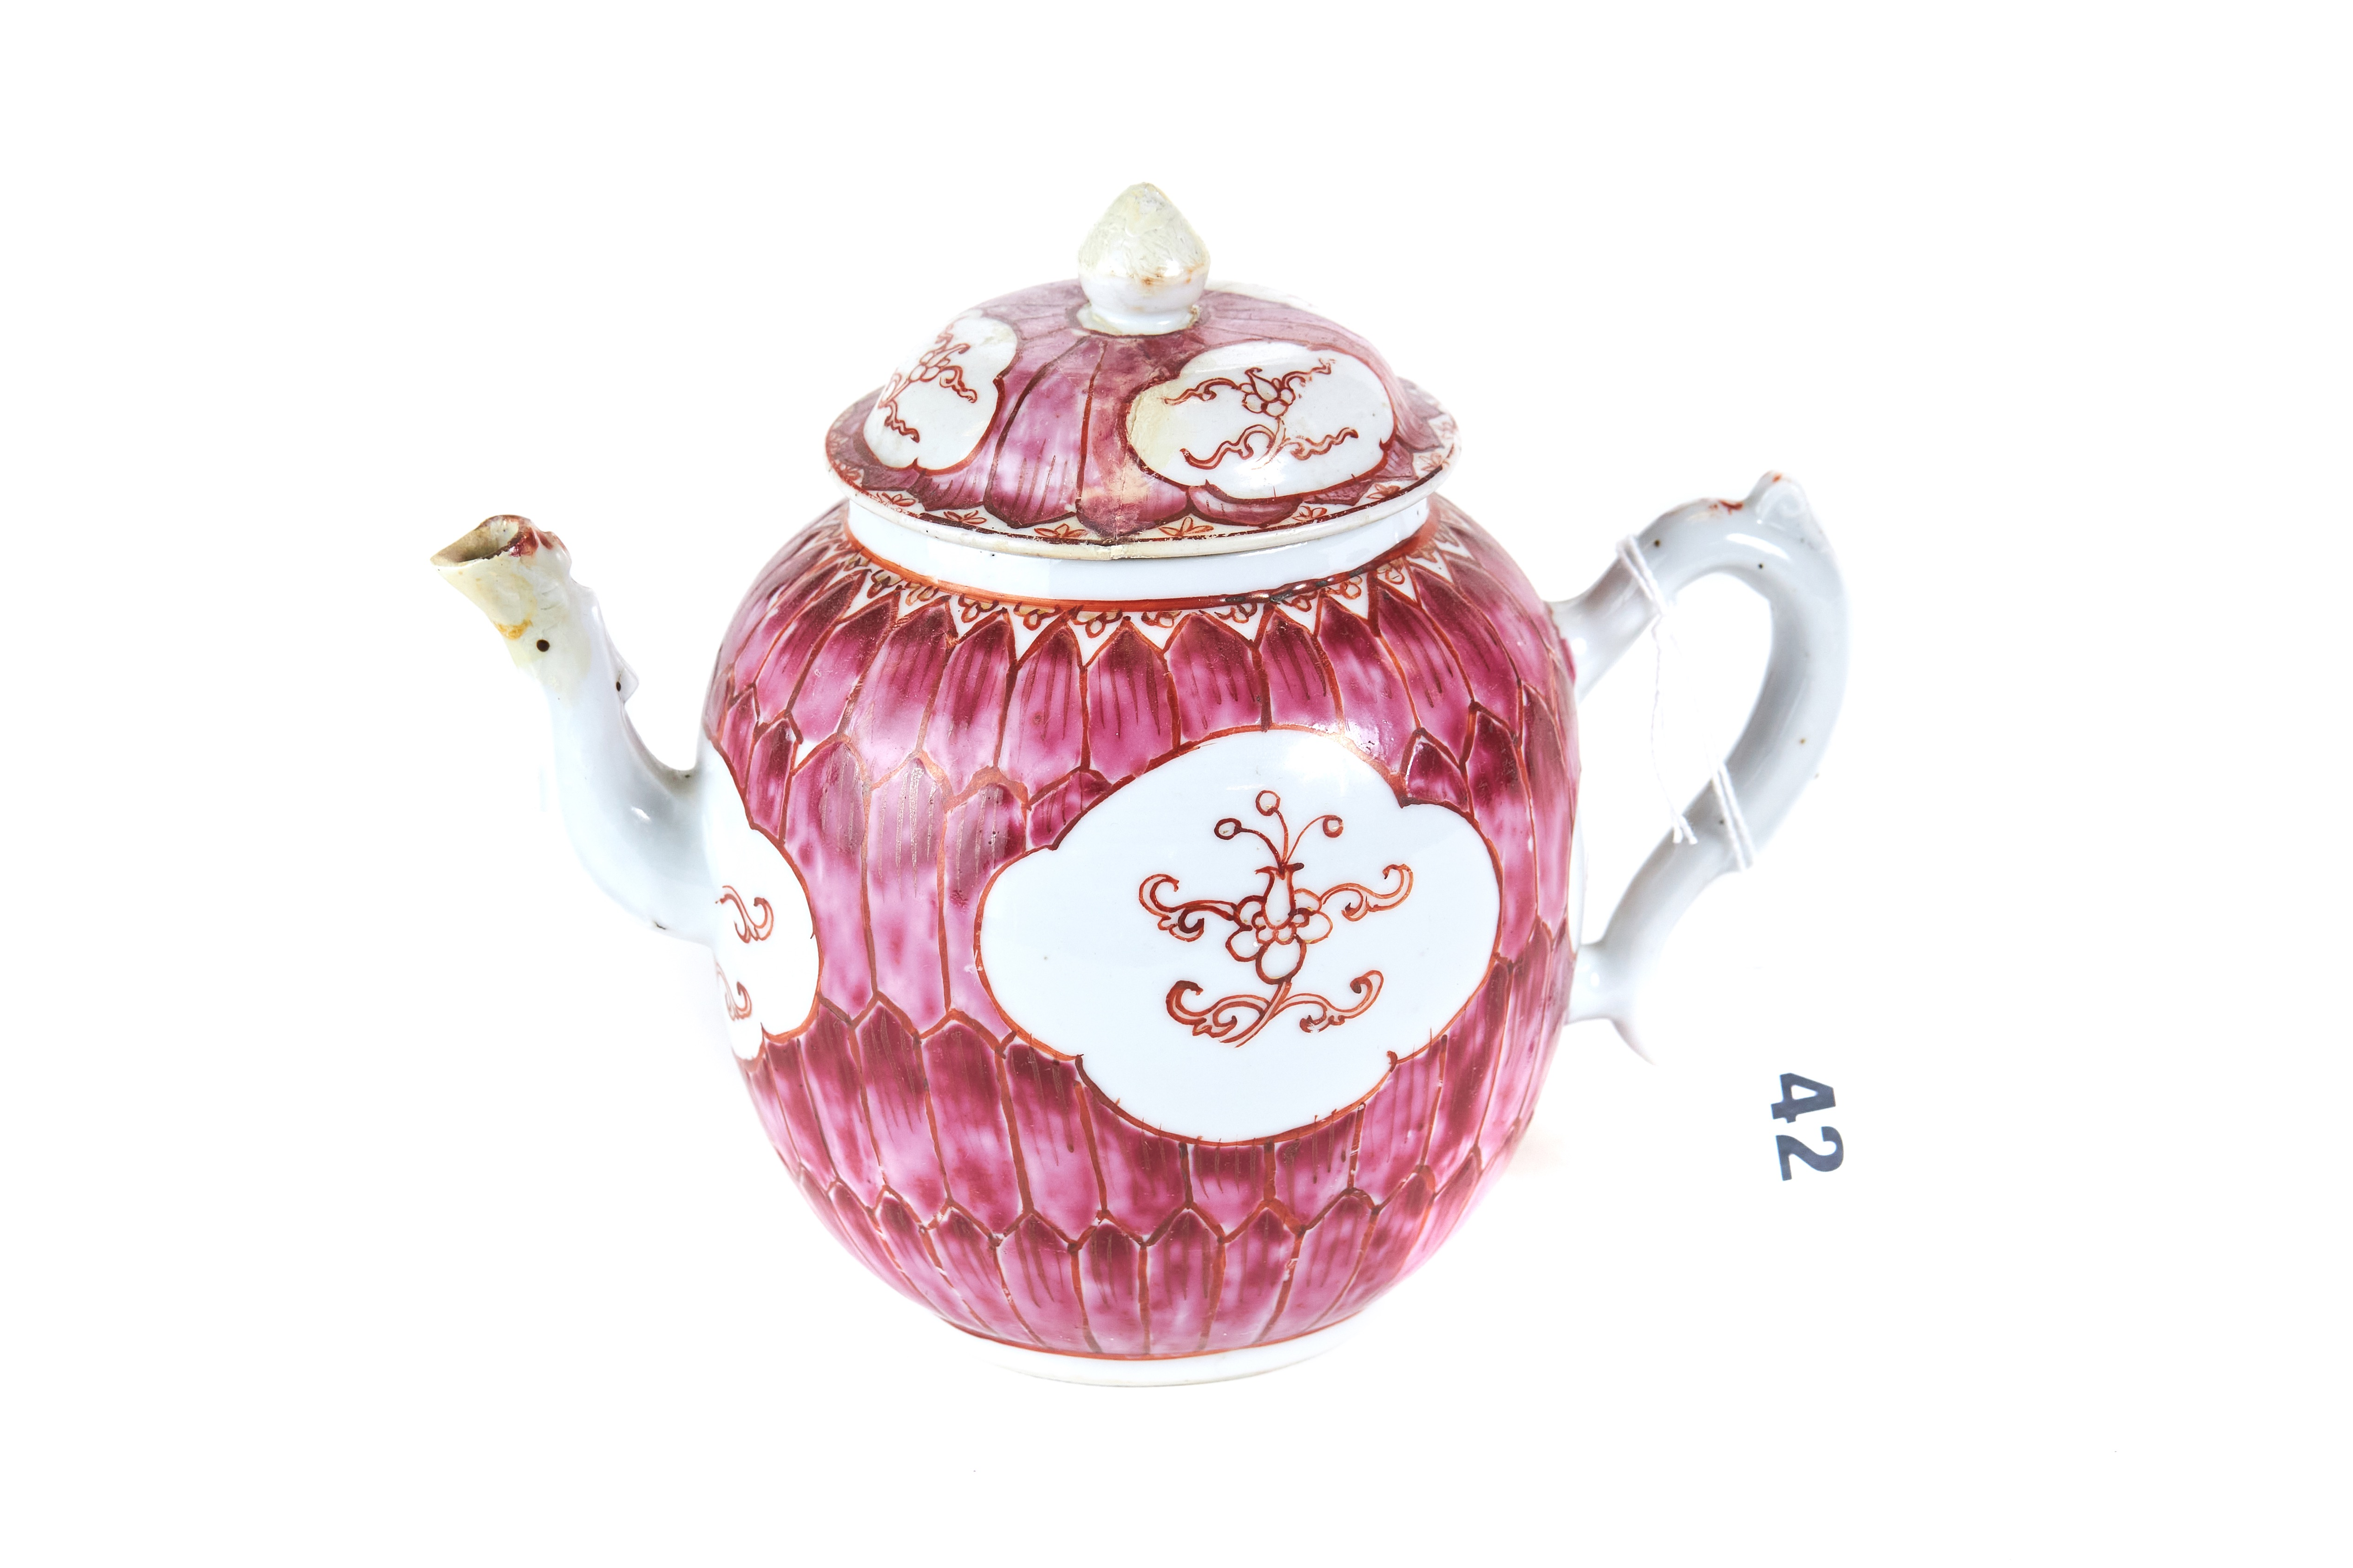 AN 18TH CENTURY CHINESE PORCELAIN TEAPOT AND COVER, pink ground with panels of flowers, 6 ins high,